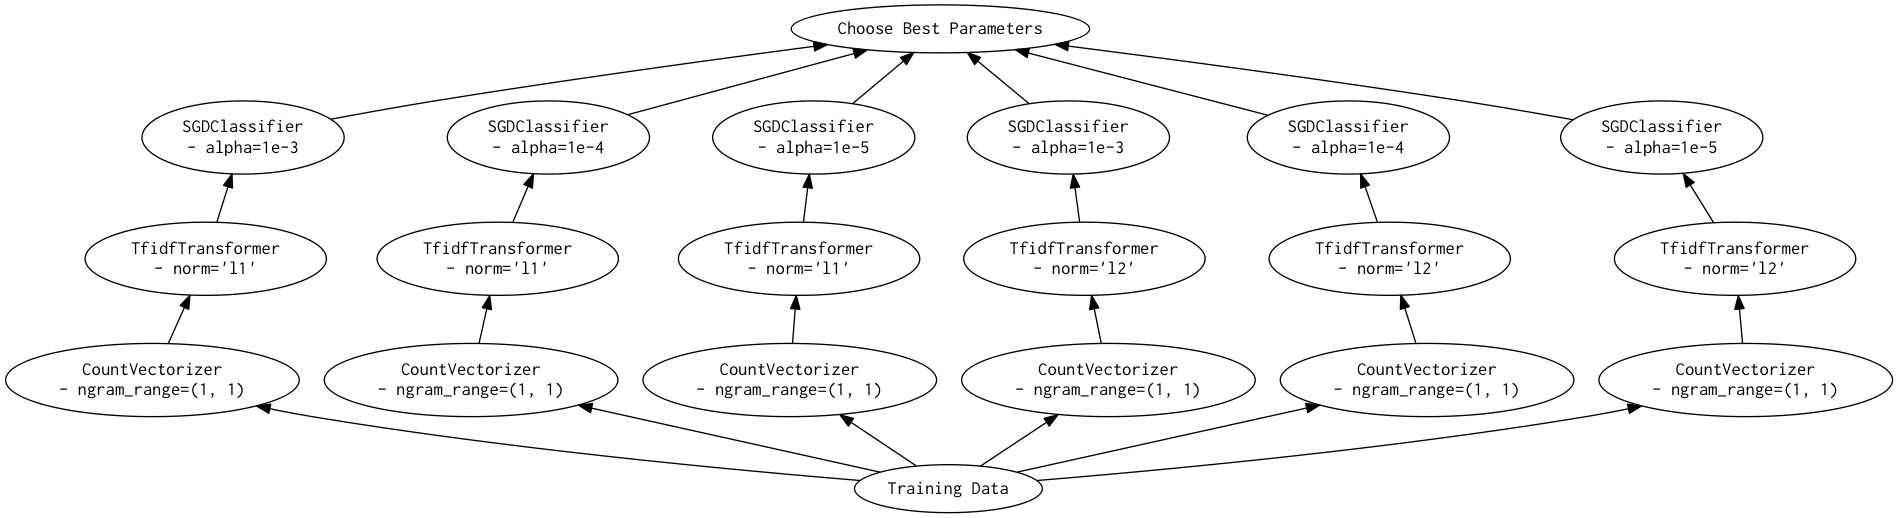 Introducing Dask-SearchCV: Distributed hyperparameter